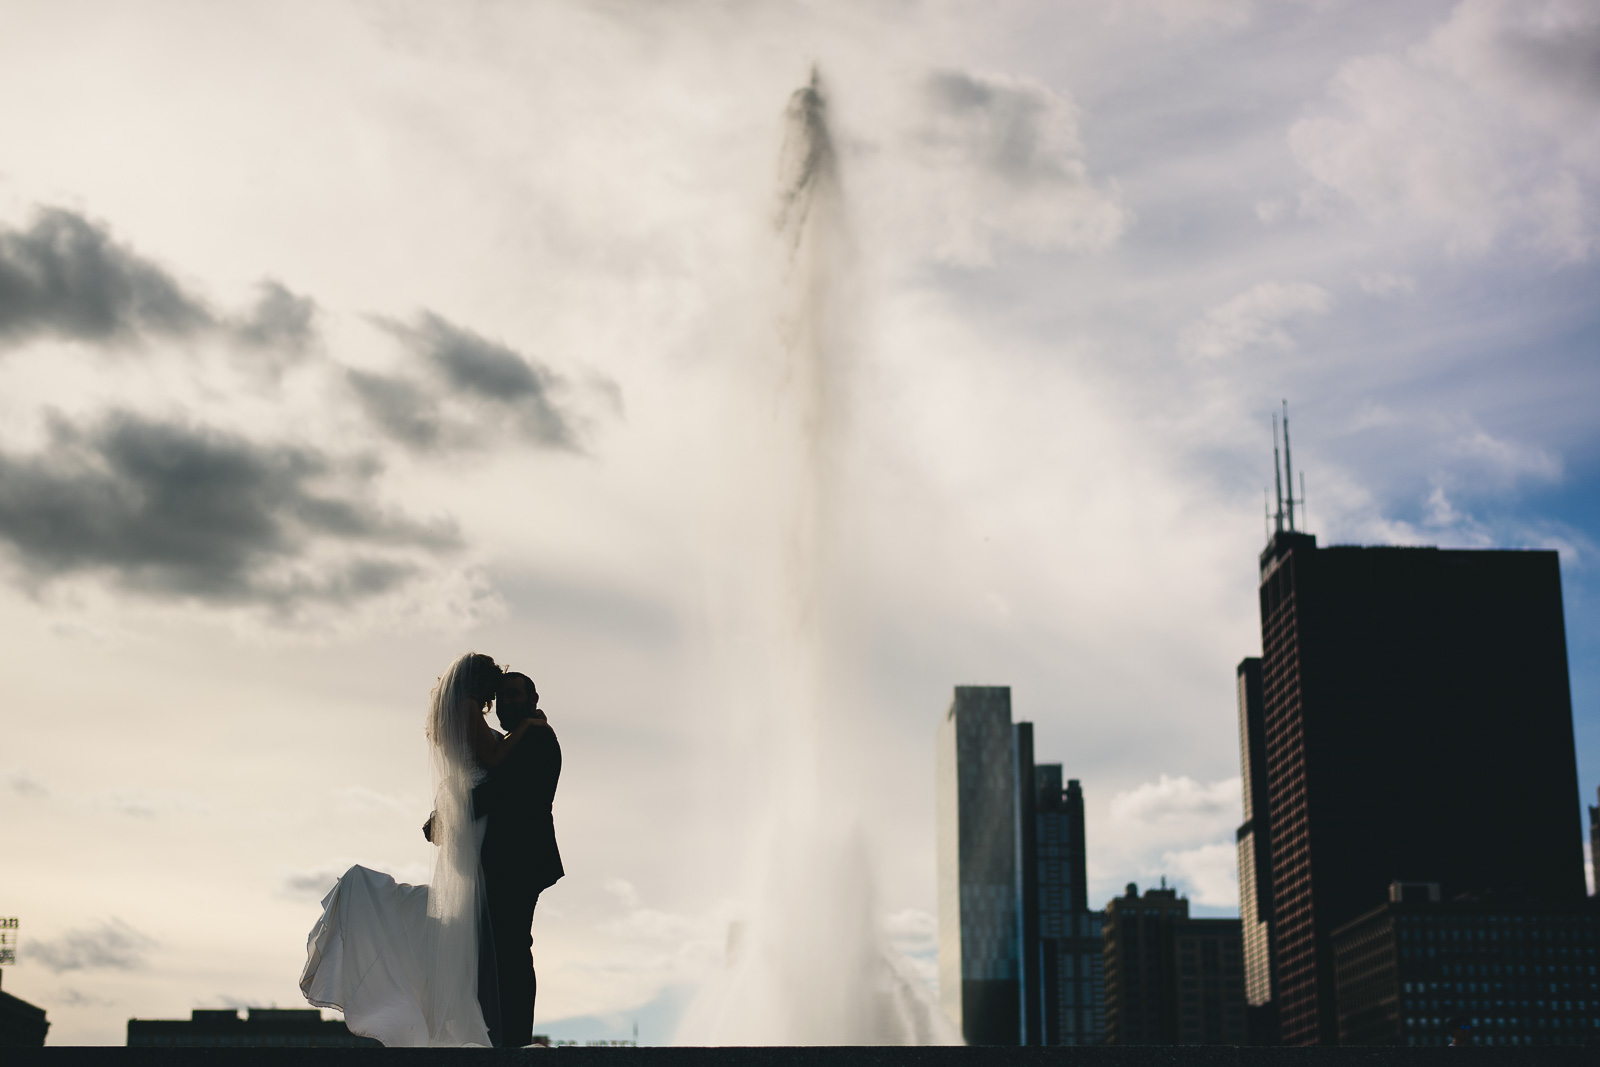 110 chicago wedding photographer best portraits during weddings review - 2018 in Review // My Favorite Chicago Wedding Photography Portraits